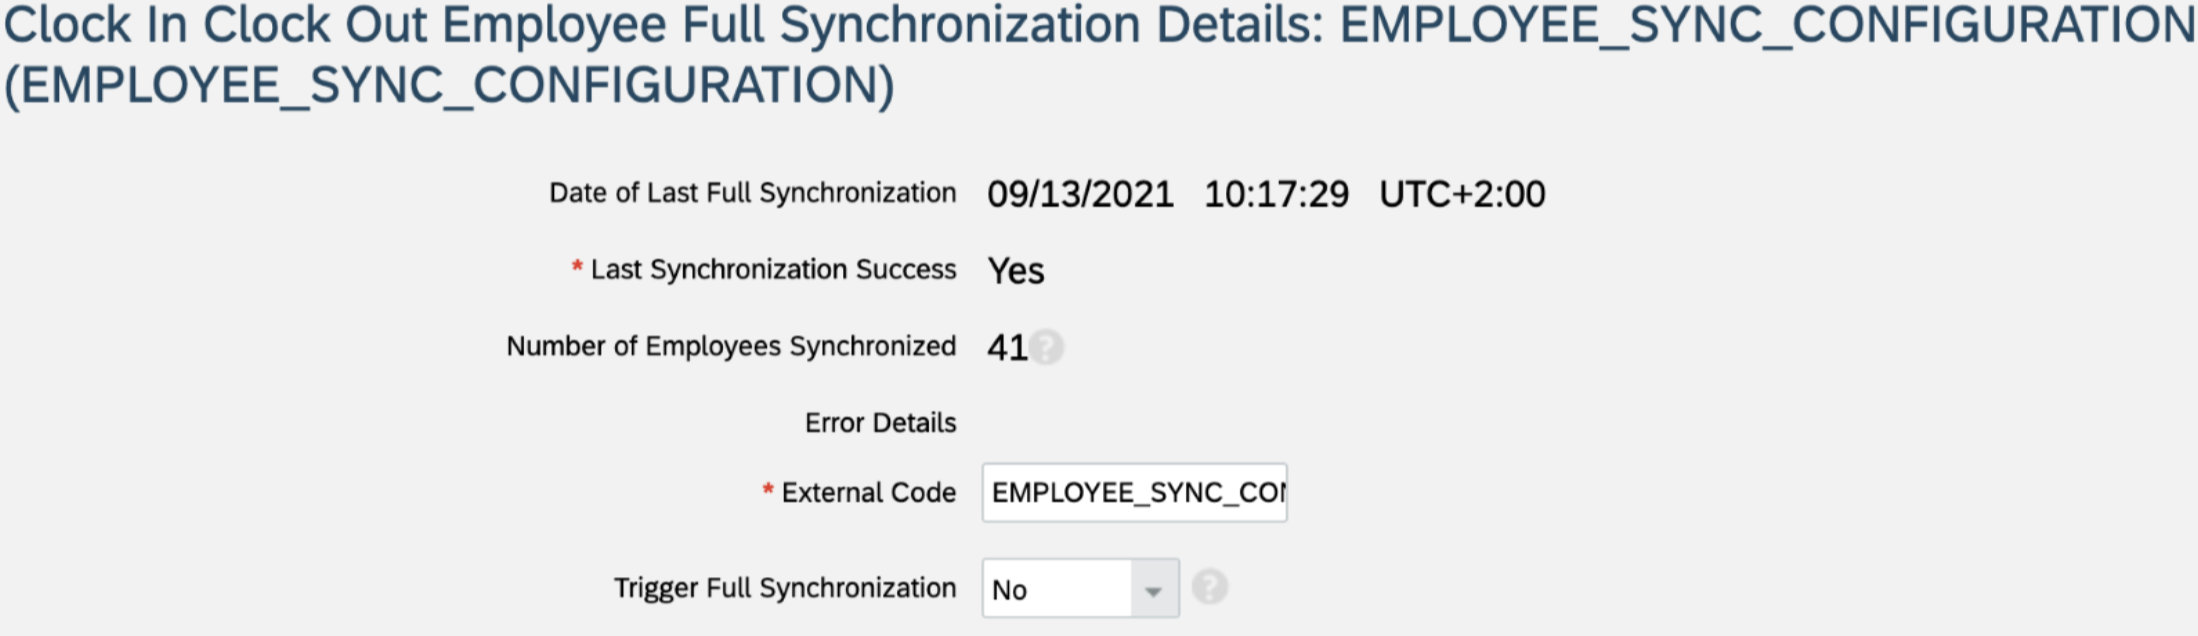 Clock%20In%20Clock%20Out%20Employee%20Full%20Synchronization%20Details